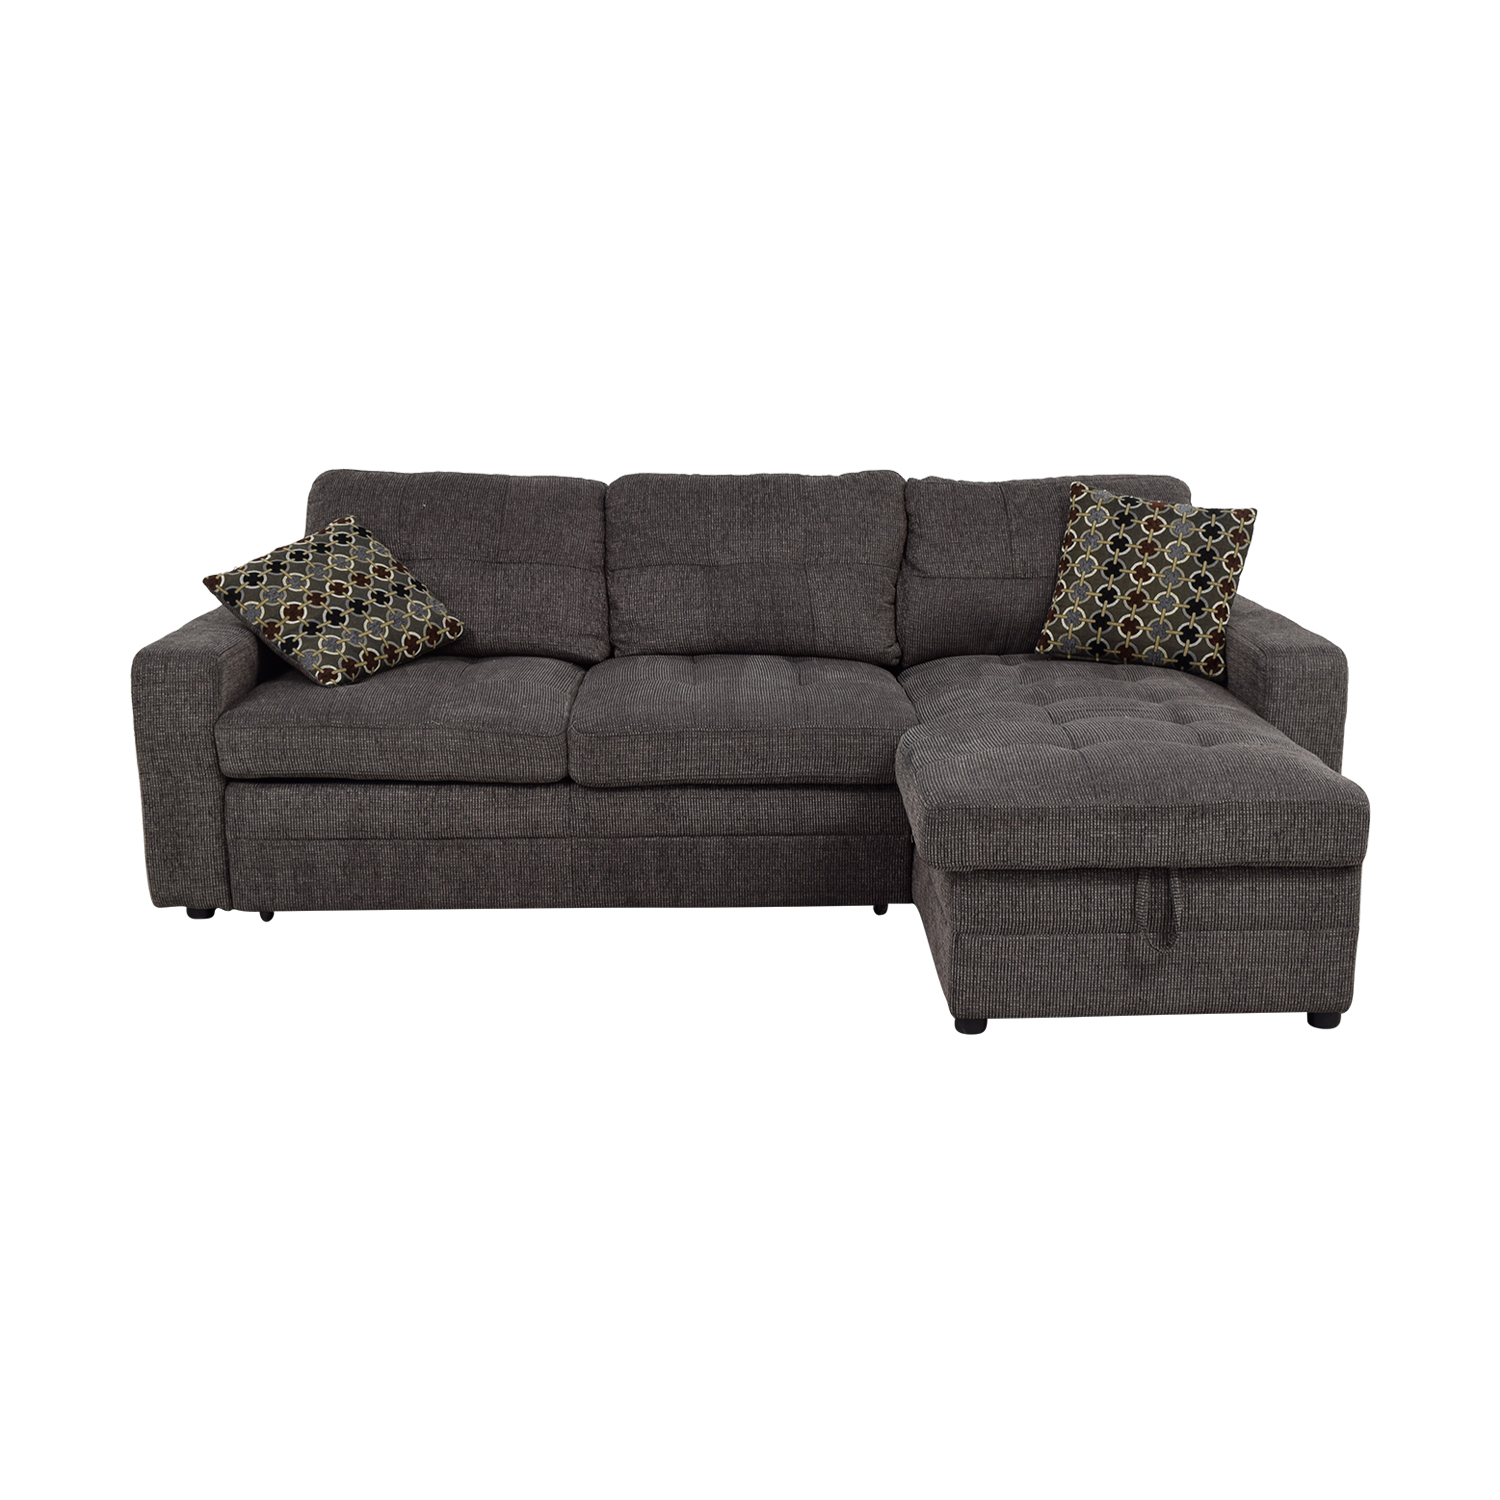 Grey Tweed Twin to Full Sofabed Sectional with Storage dimensions